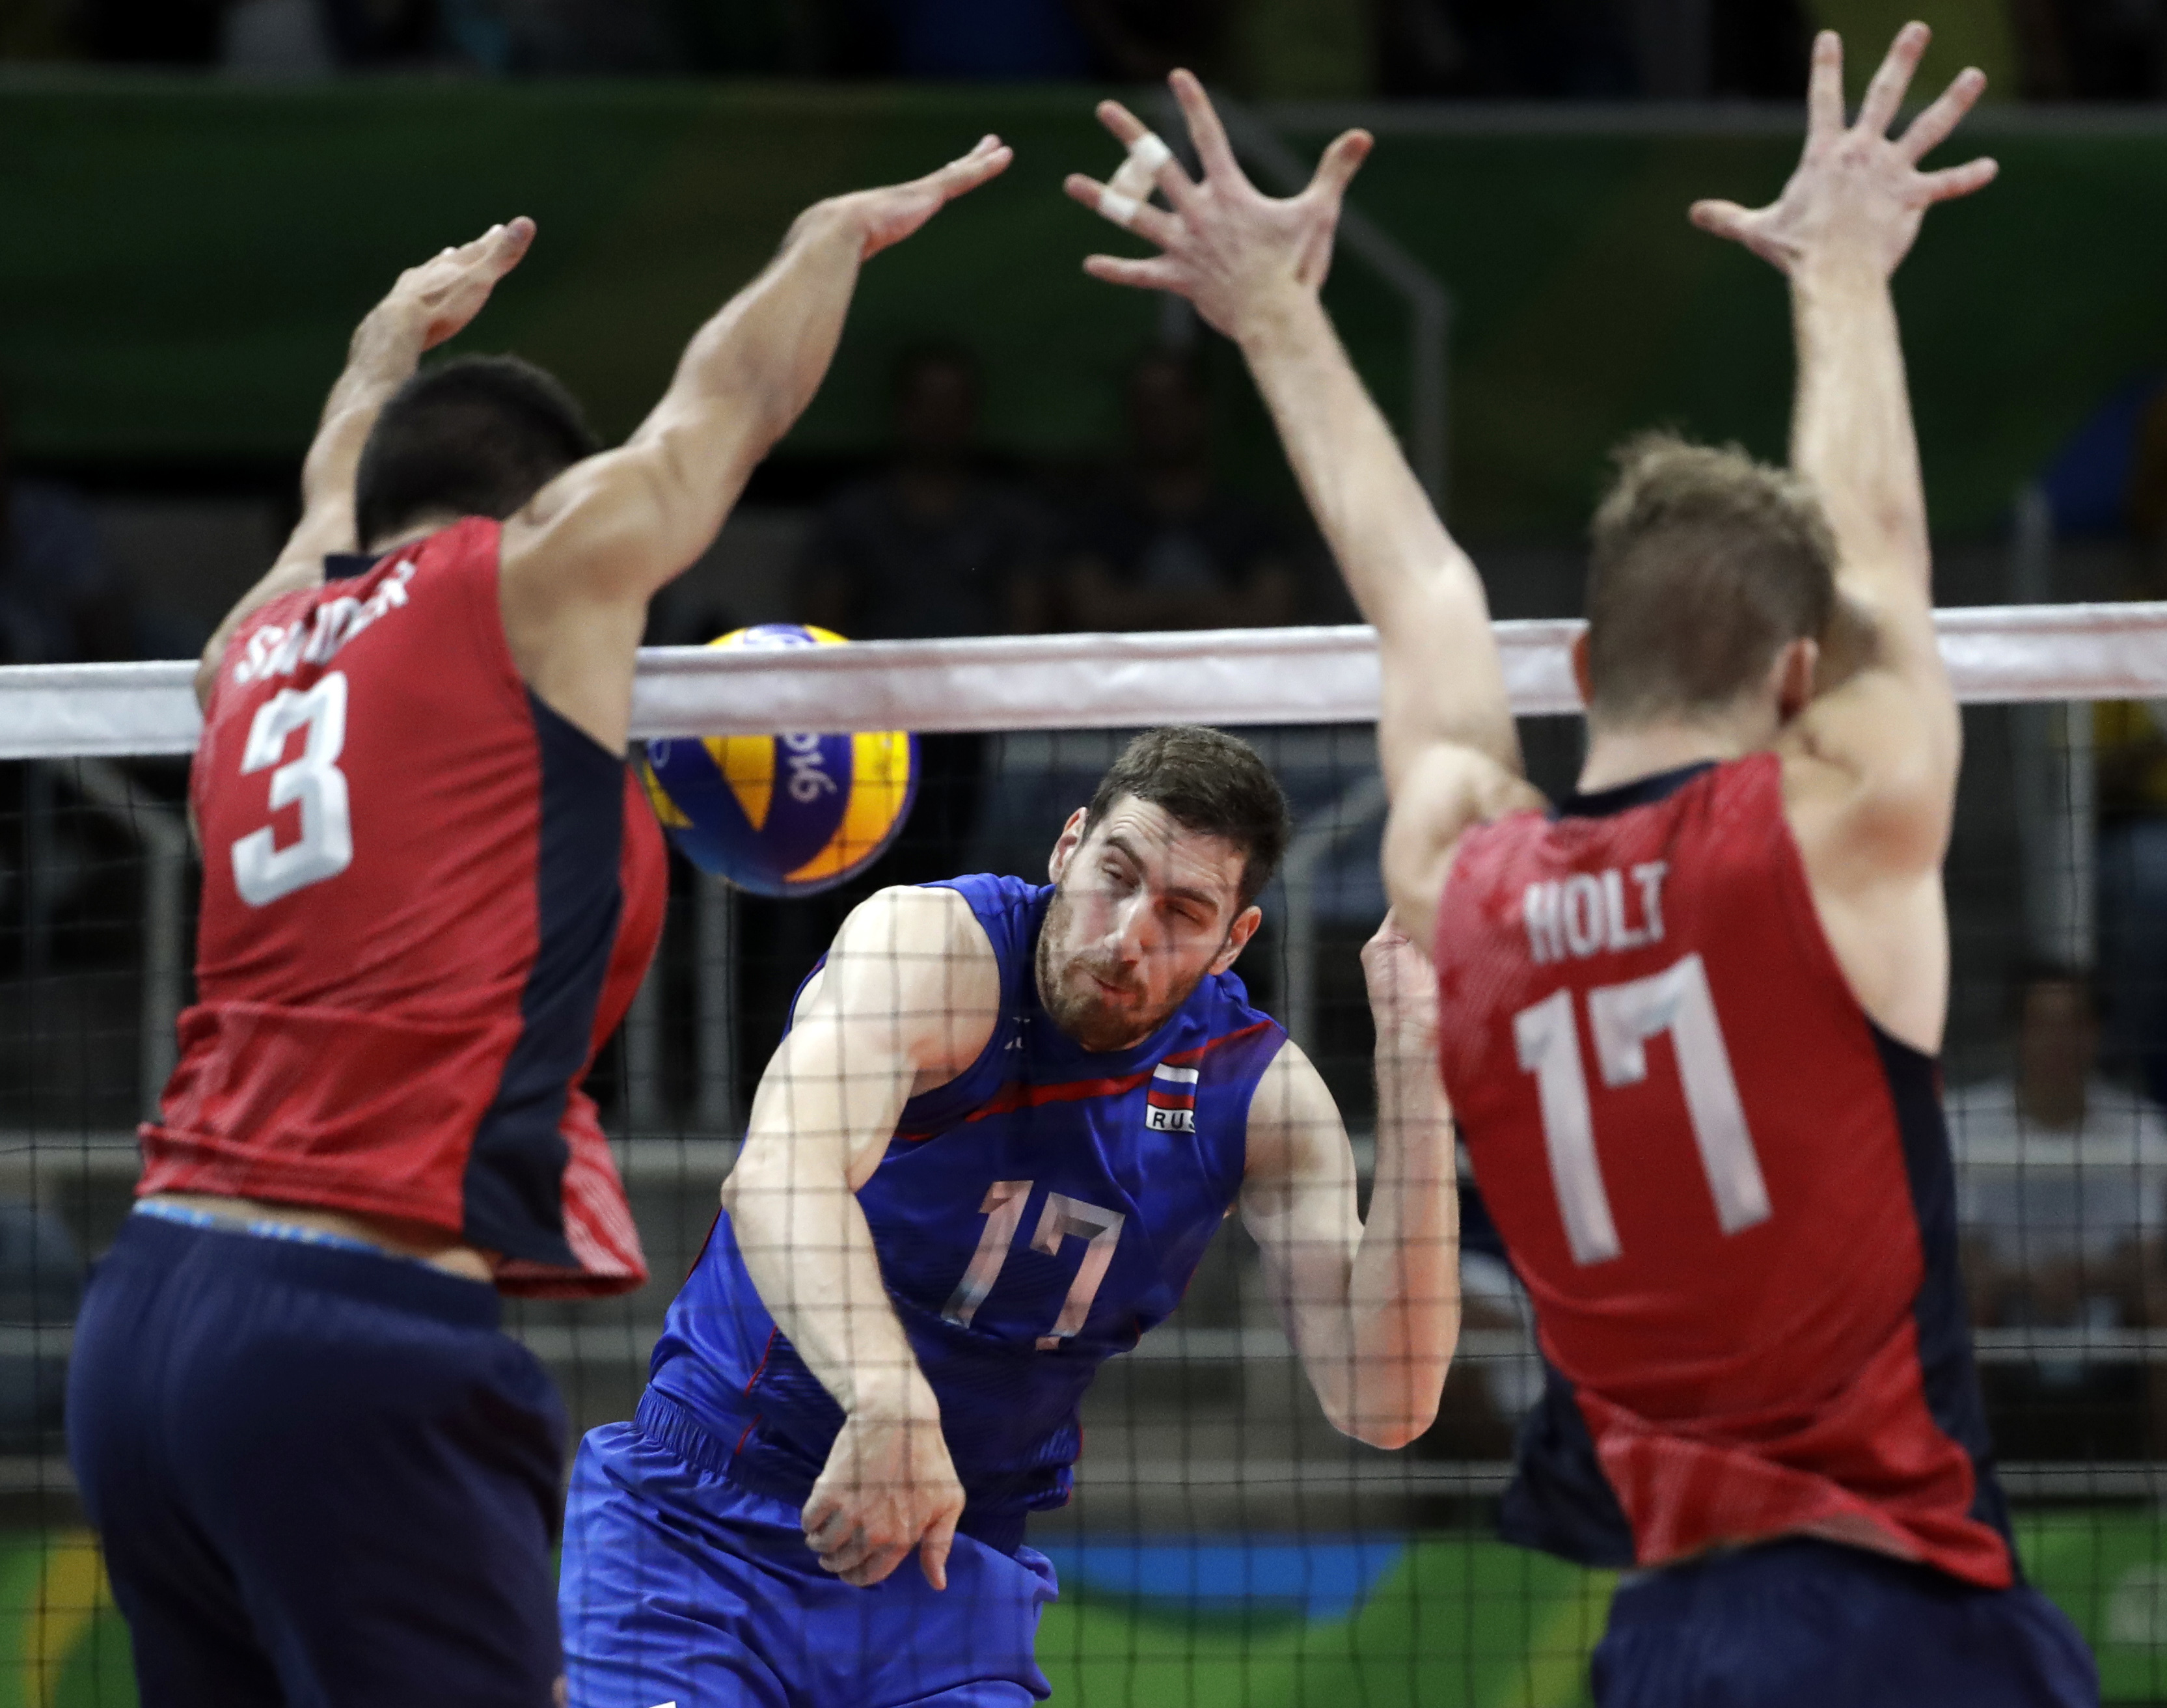 Russia's Maxim Mikhaylov (17) has his shot blocked by United States' Taylor Sander (3) and Maxwell Holt (17) during a men's bronze medal volleyball match at the 2016 Summer Olympics in Rio de Janeiro, Brazil, Sunday, Aug. 21, 2016. (AP Photo/Jeff Roberson